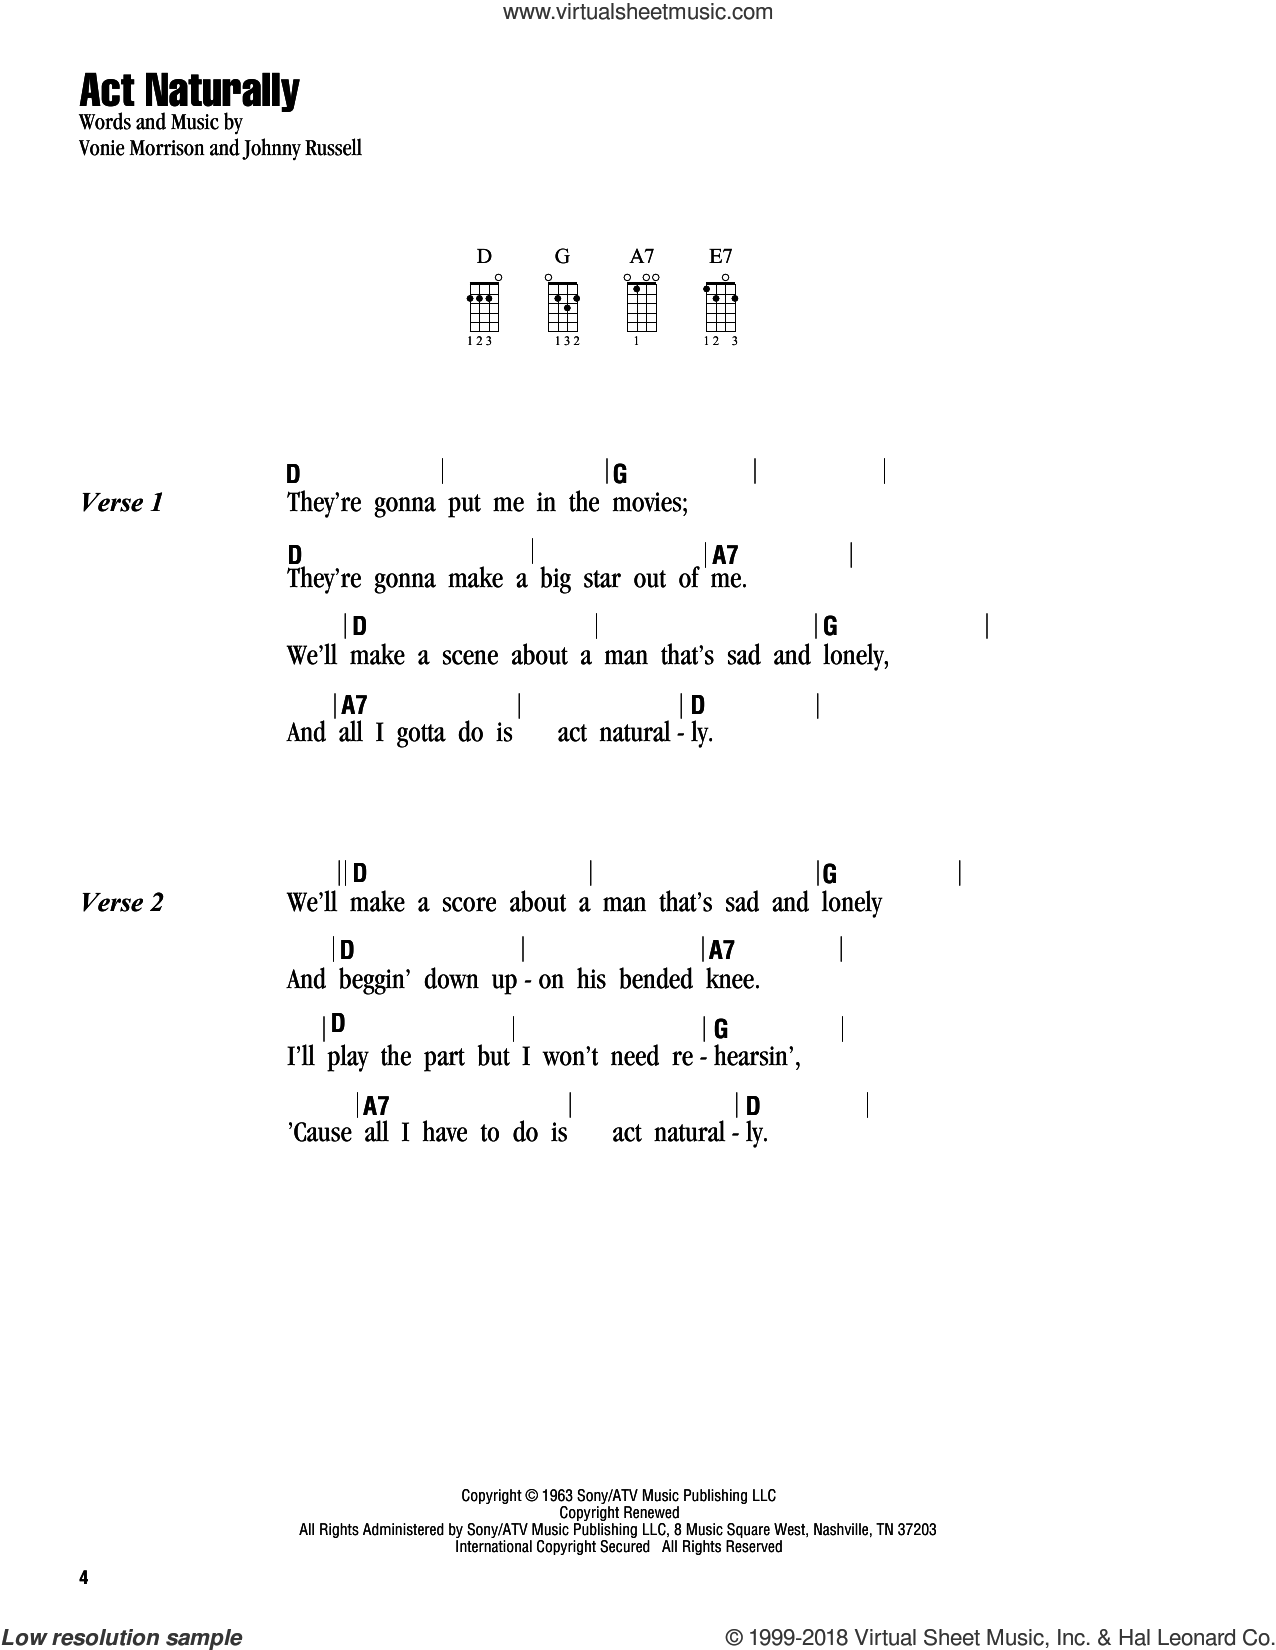 Act Naturally sheet music for ukulele (chords) by Buck Owens, The Beatles, Johnny Russell and Vonie Morrison, intermediate. Score Image Preview.